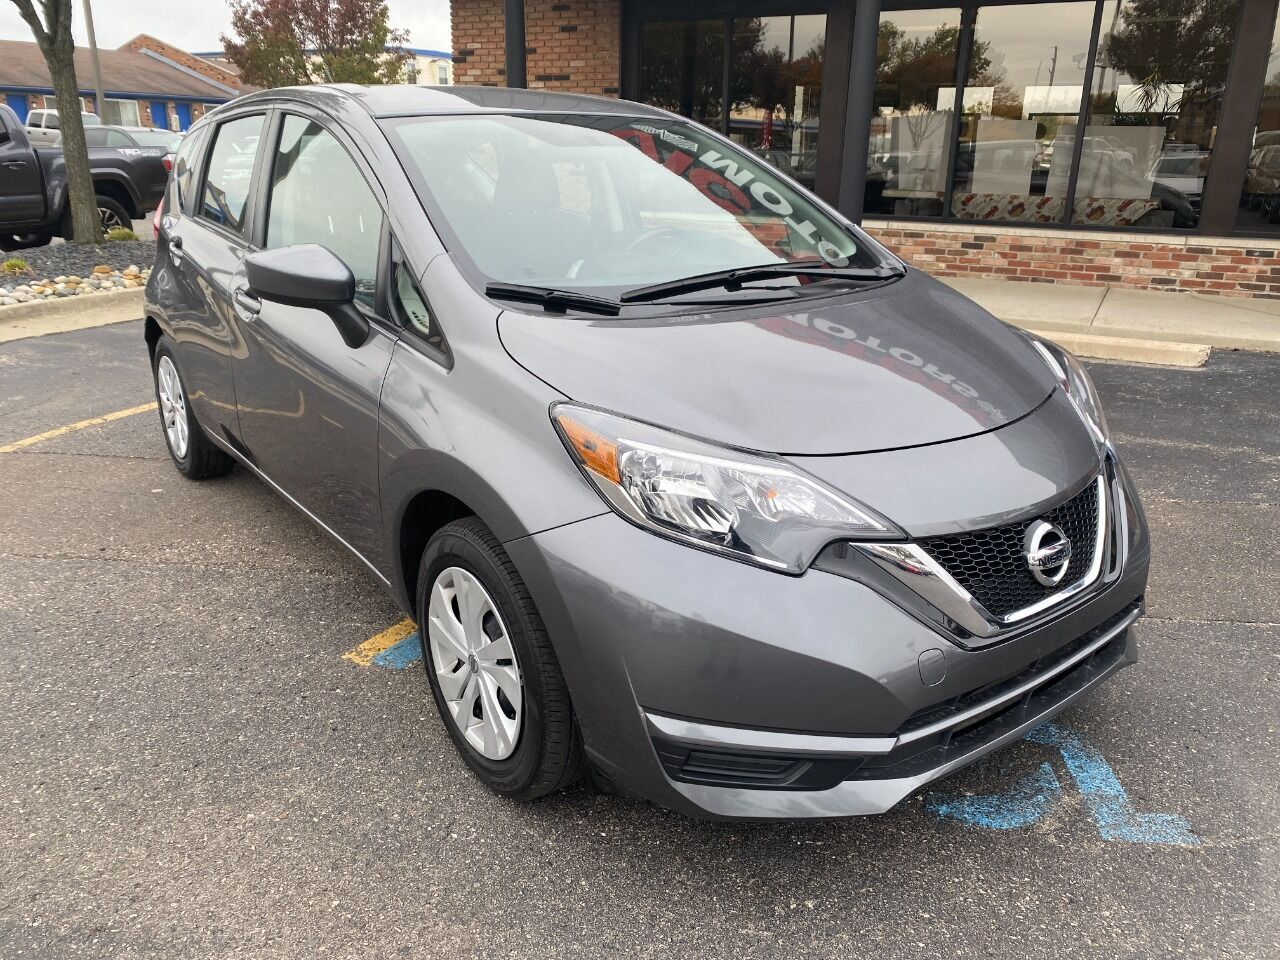 2019 Nissan Versa Note SV 4dr Hatchback Chesterfield MI